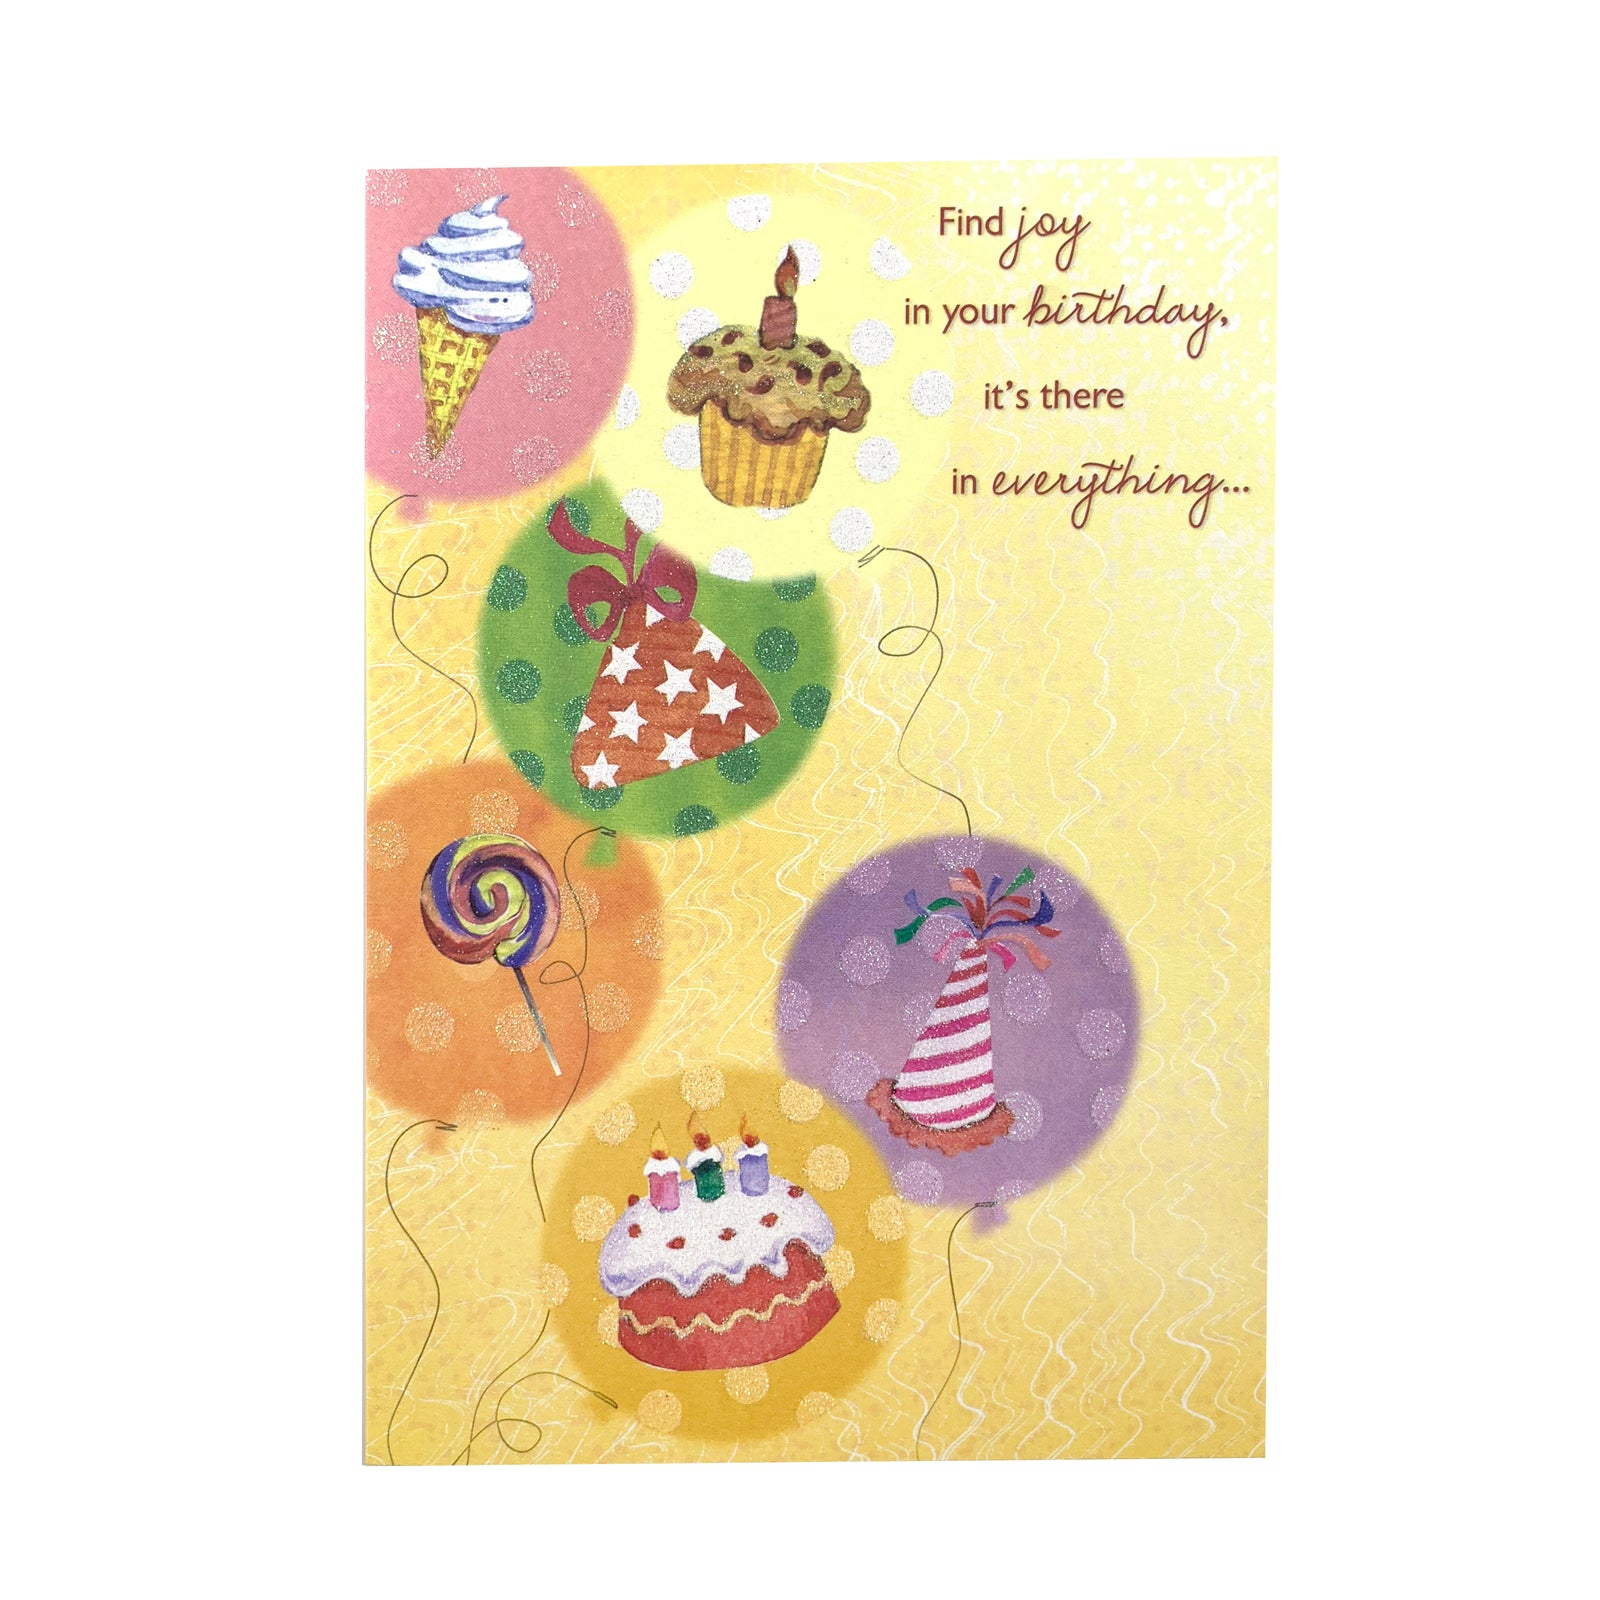 Designer Greetings Birthday Card - Find Joy In Your Birthday